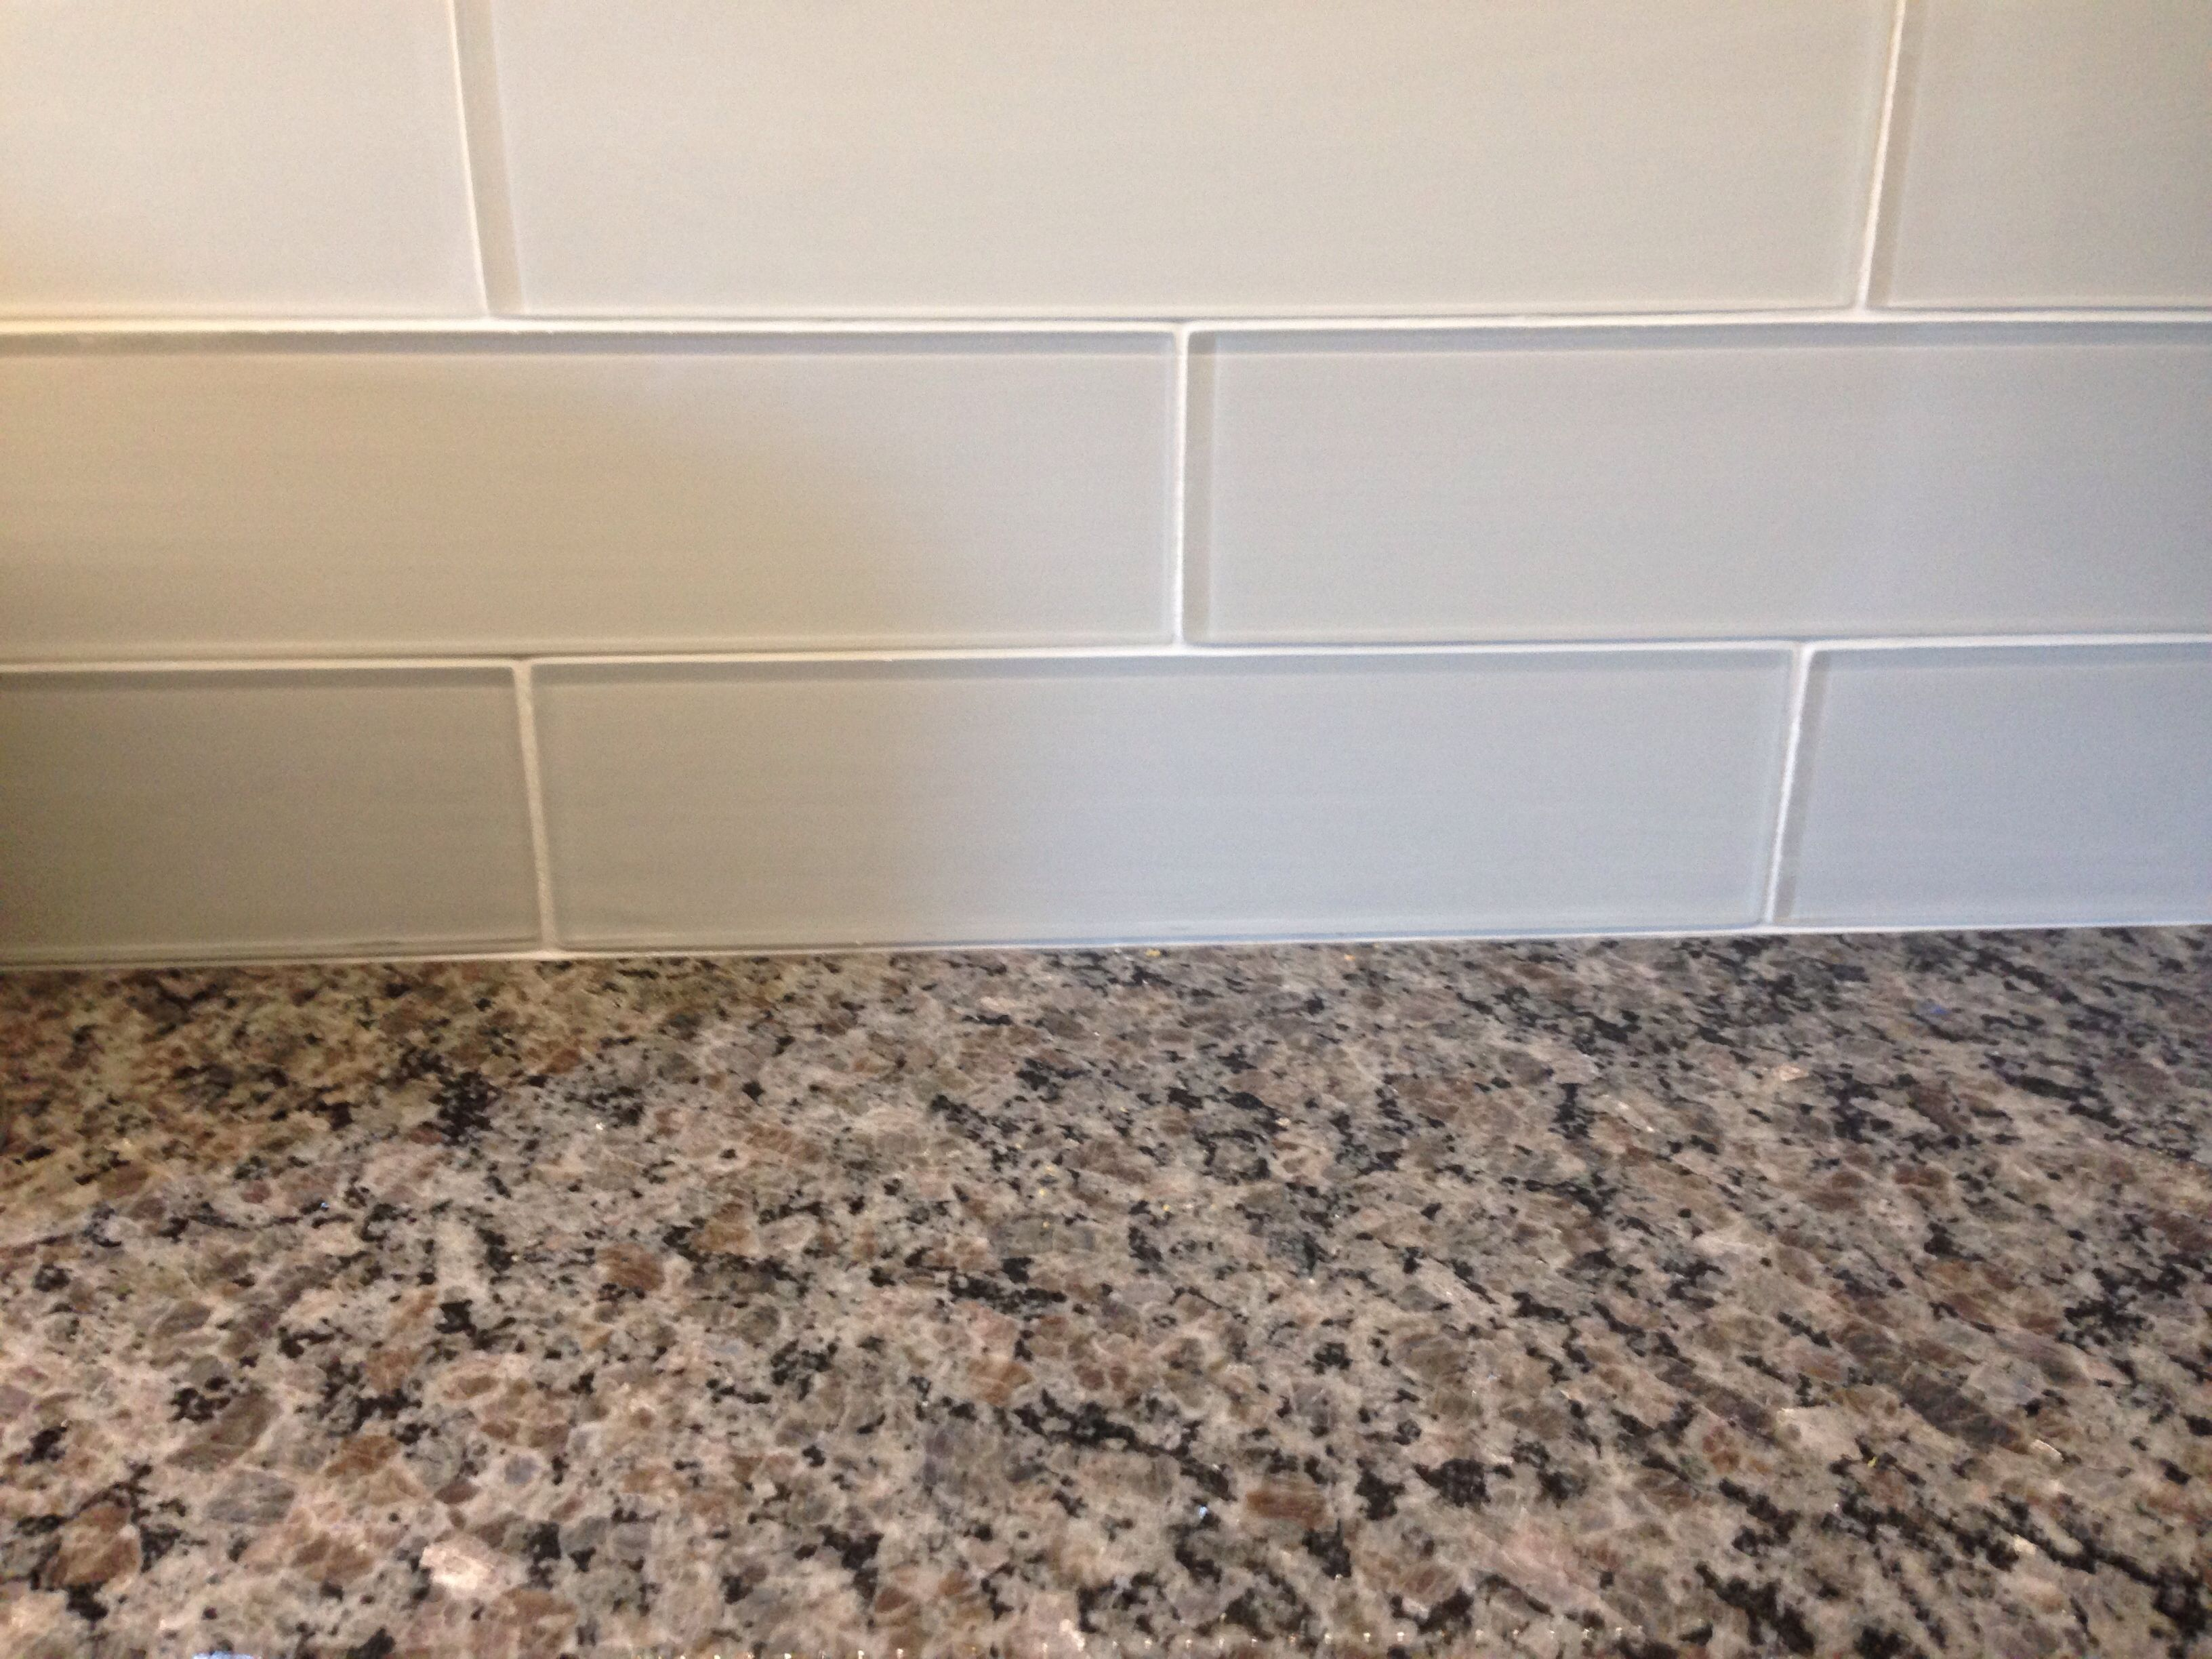 New Caledonia Granite Countertops And White Glass Tile Backsplash